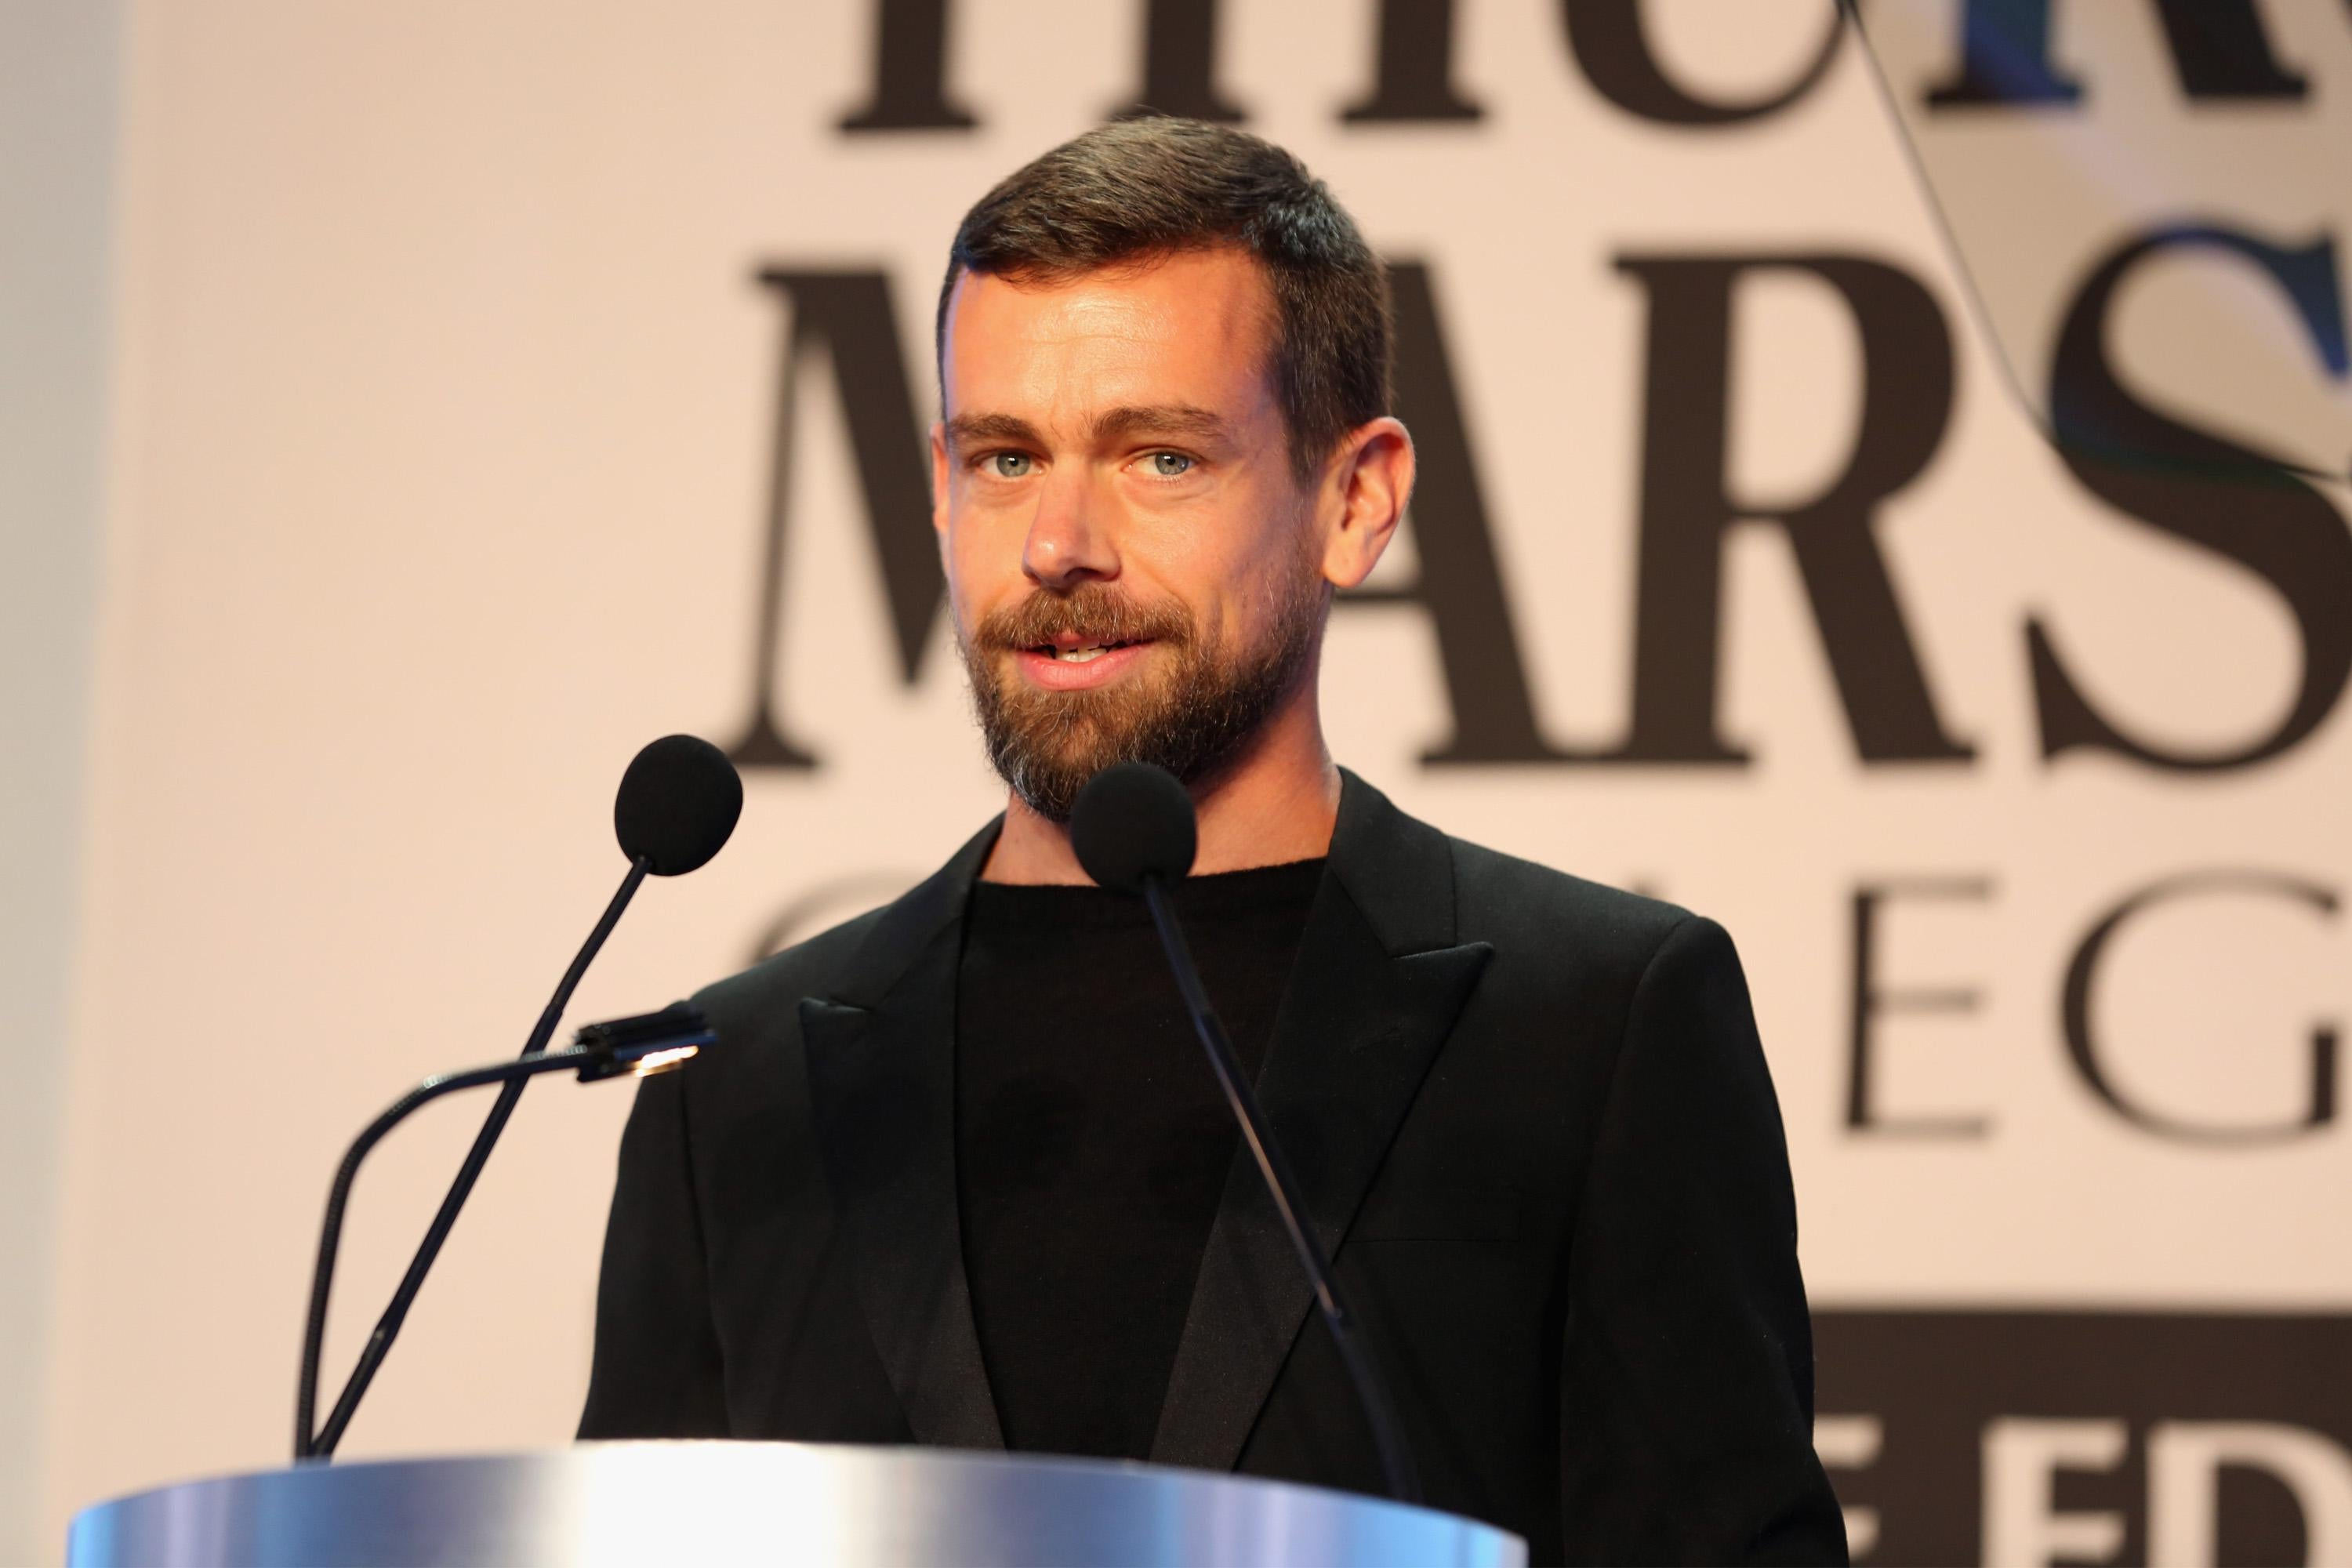 Twitter CEO Jack Dorsey speaks at an event.